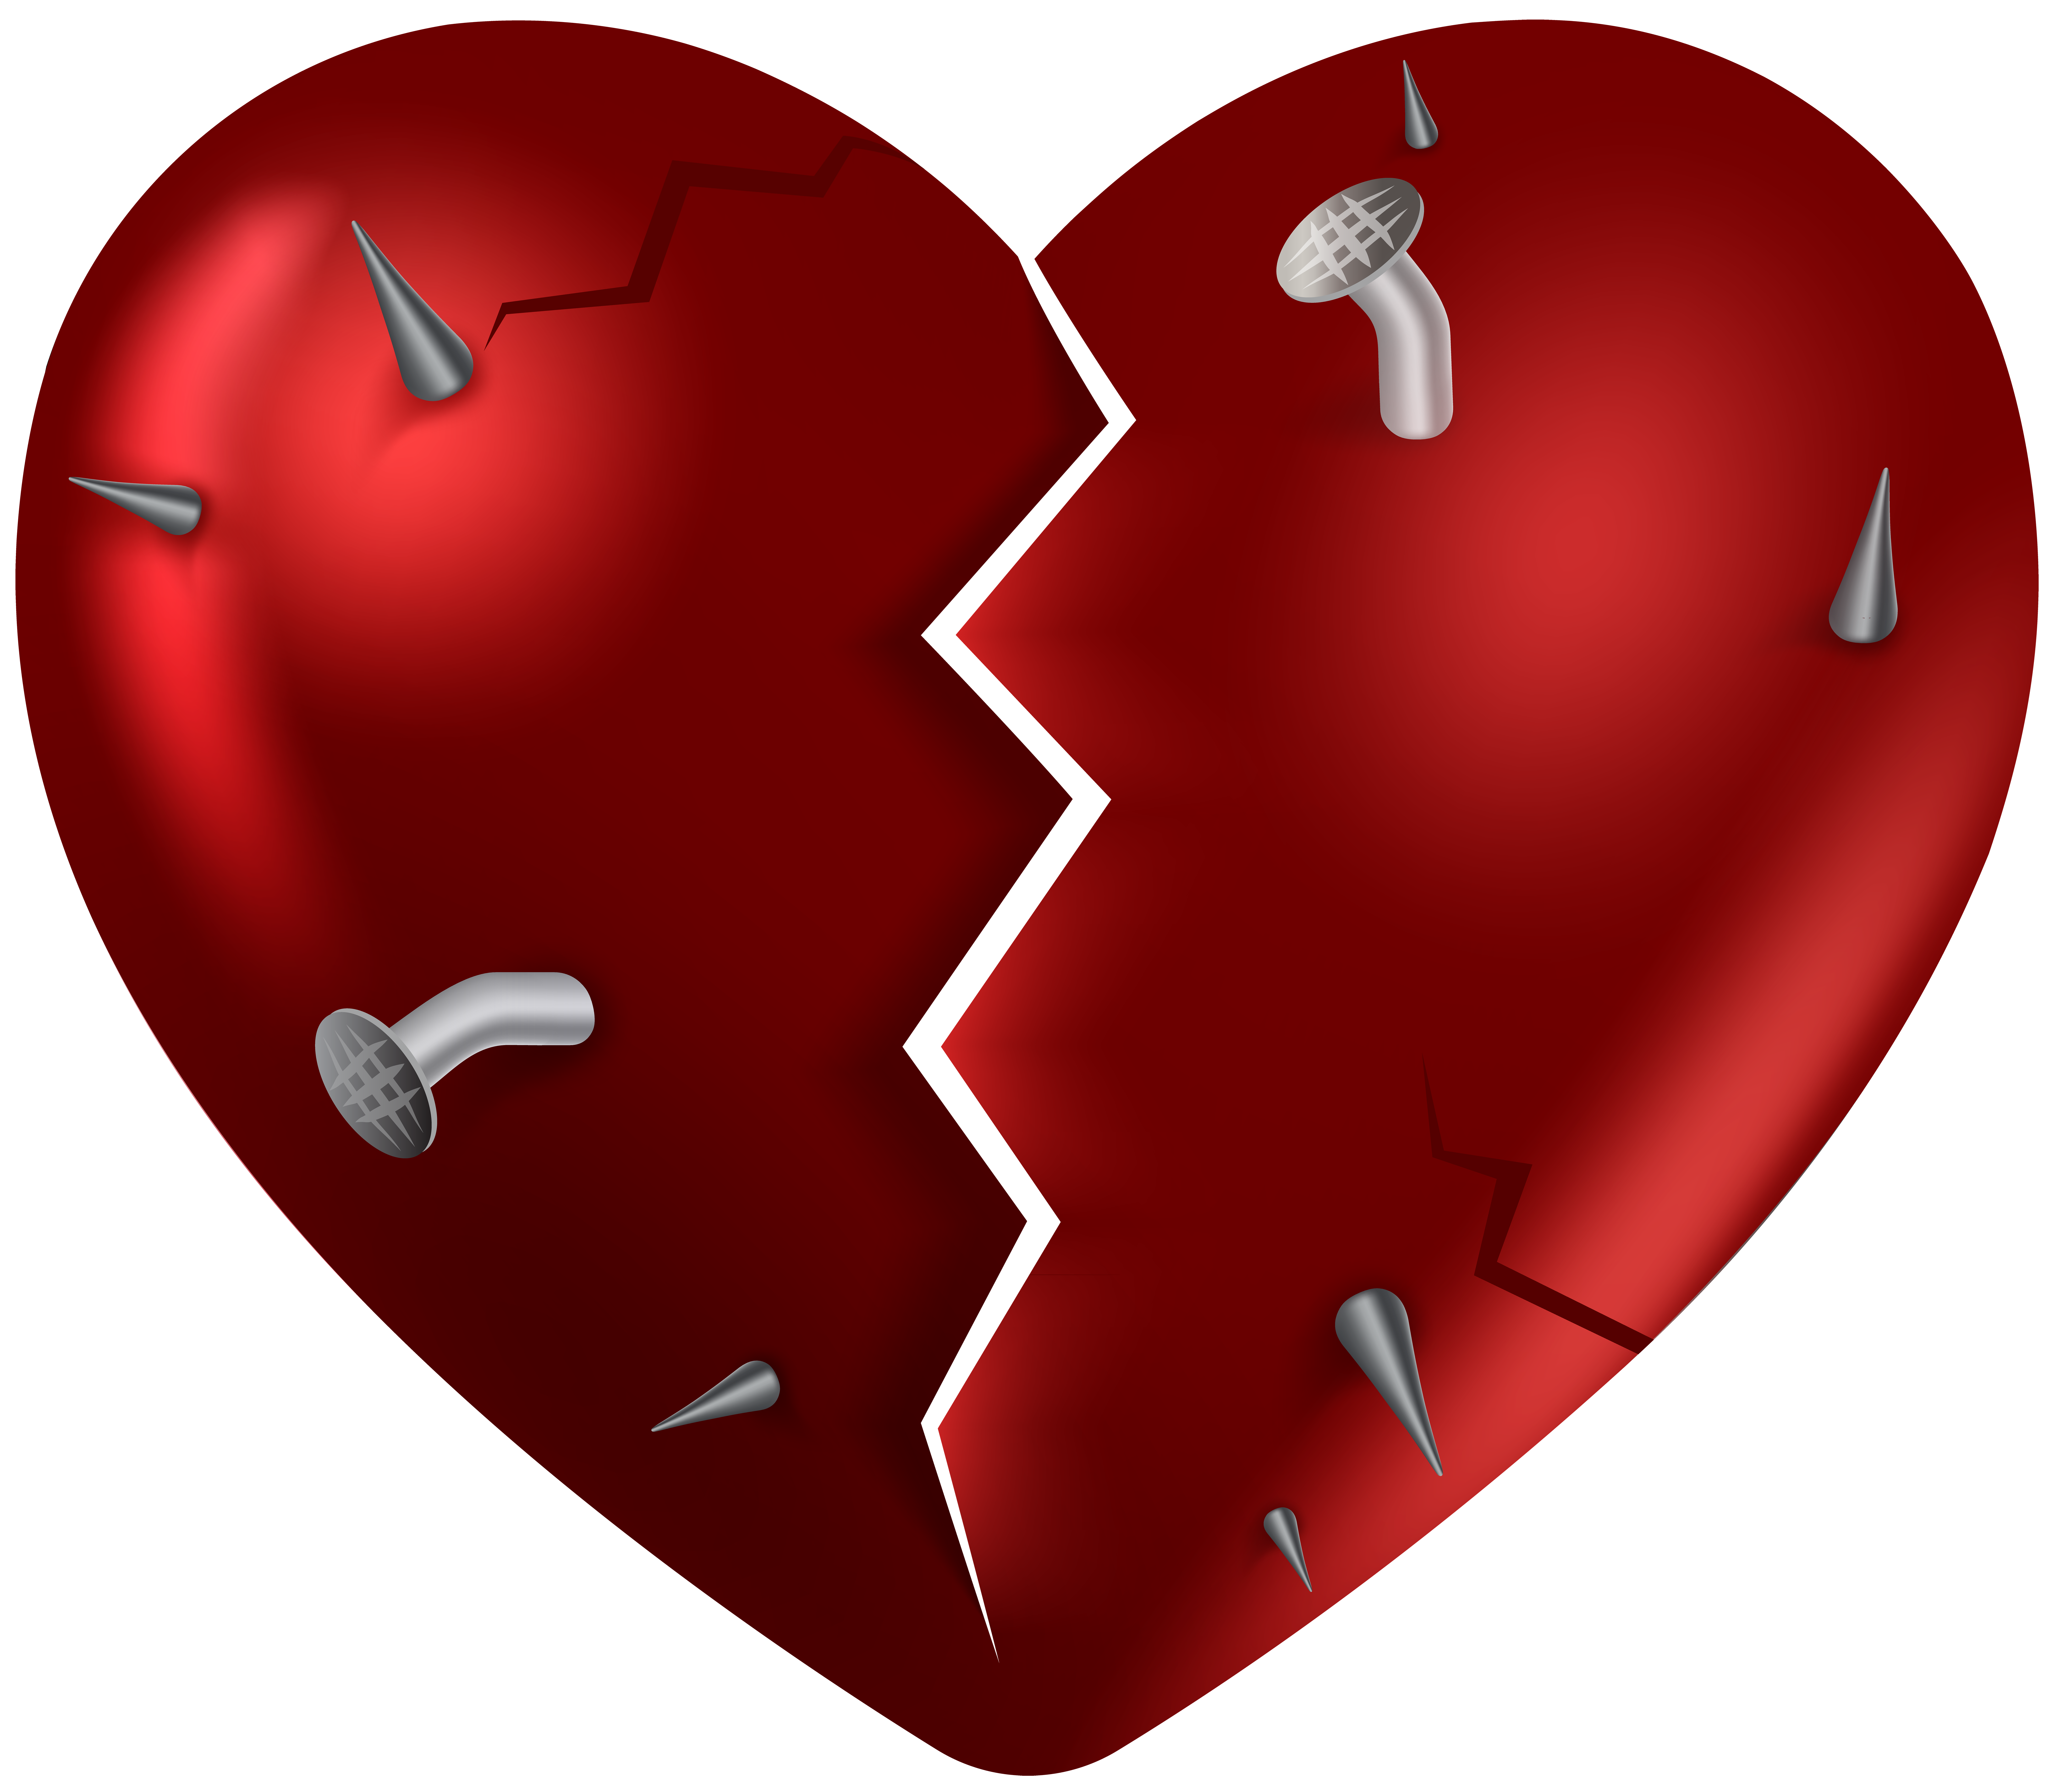 Red Heart Clipart High Resolution